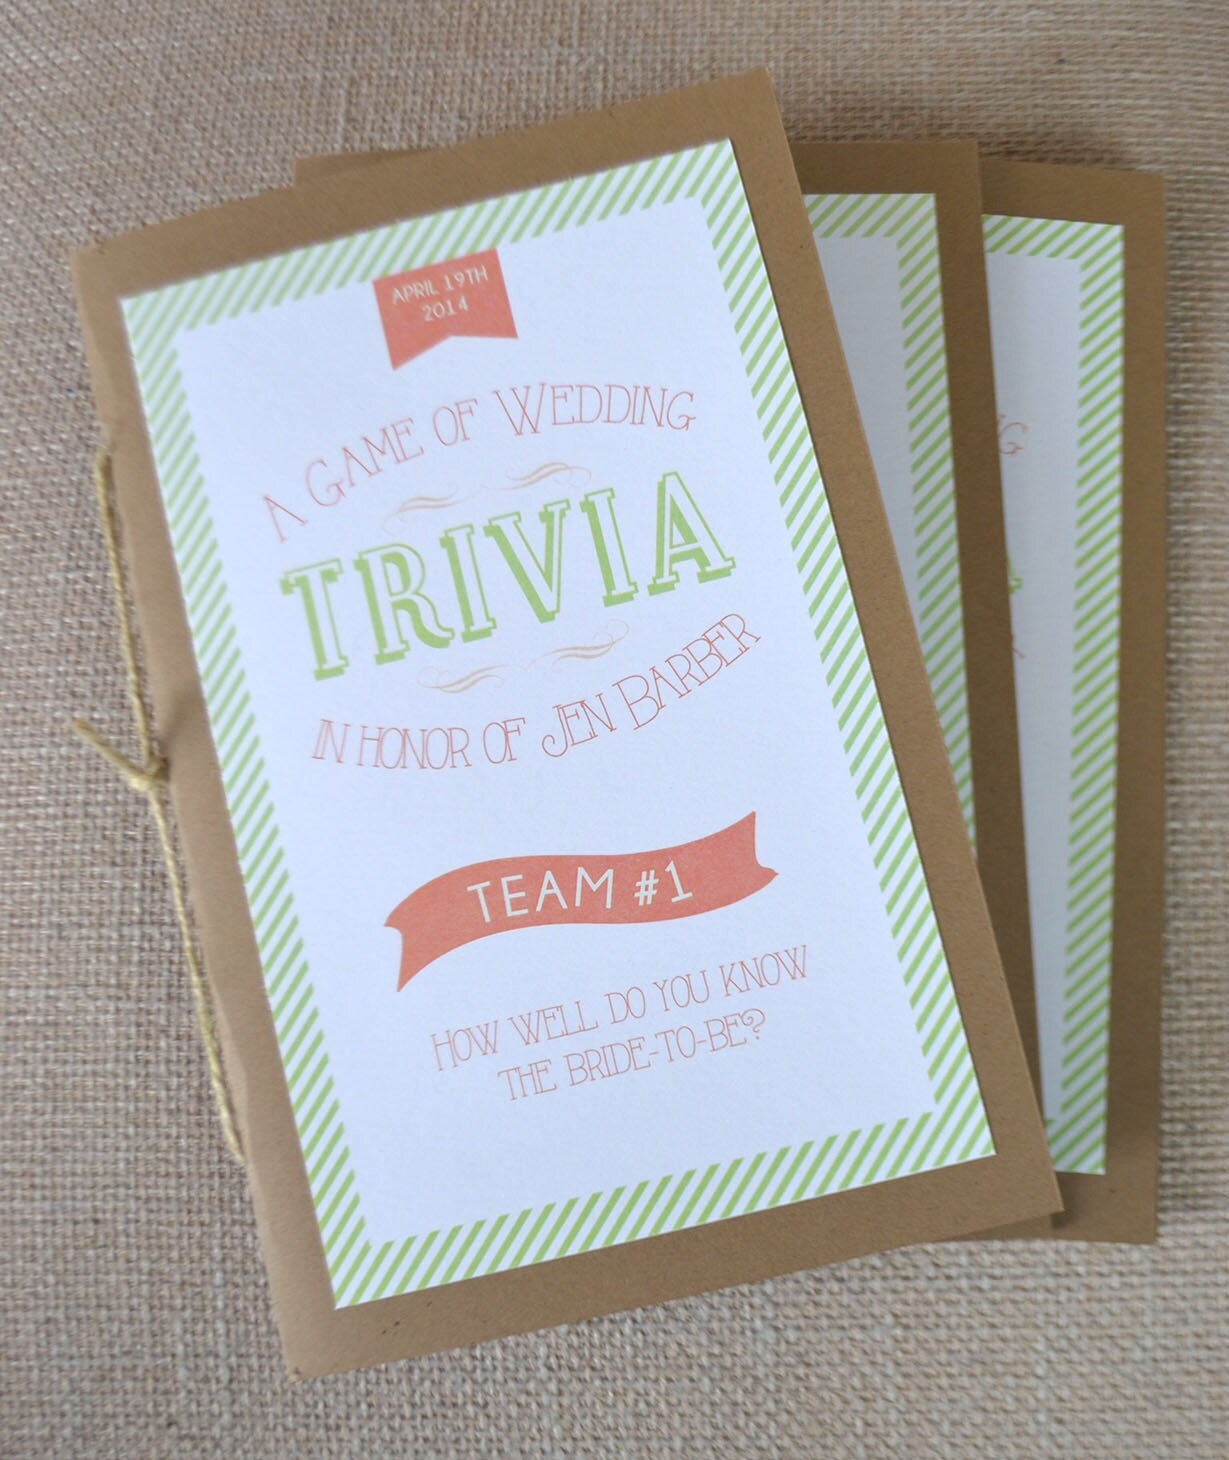 Bride And Groom Trivia Questions: Bridal Shower Game: Trivia Book DIY Printable Shower Game